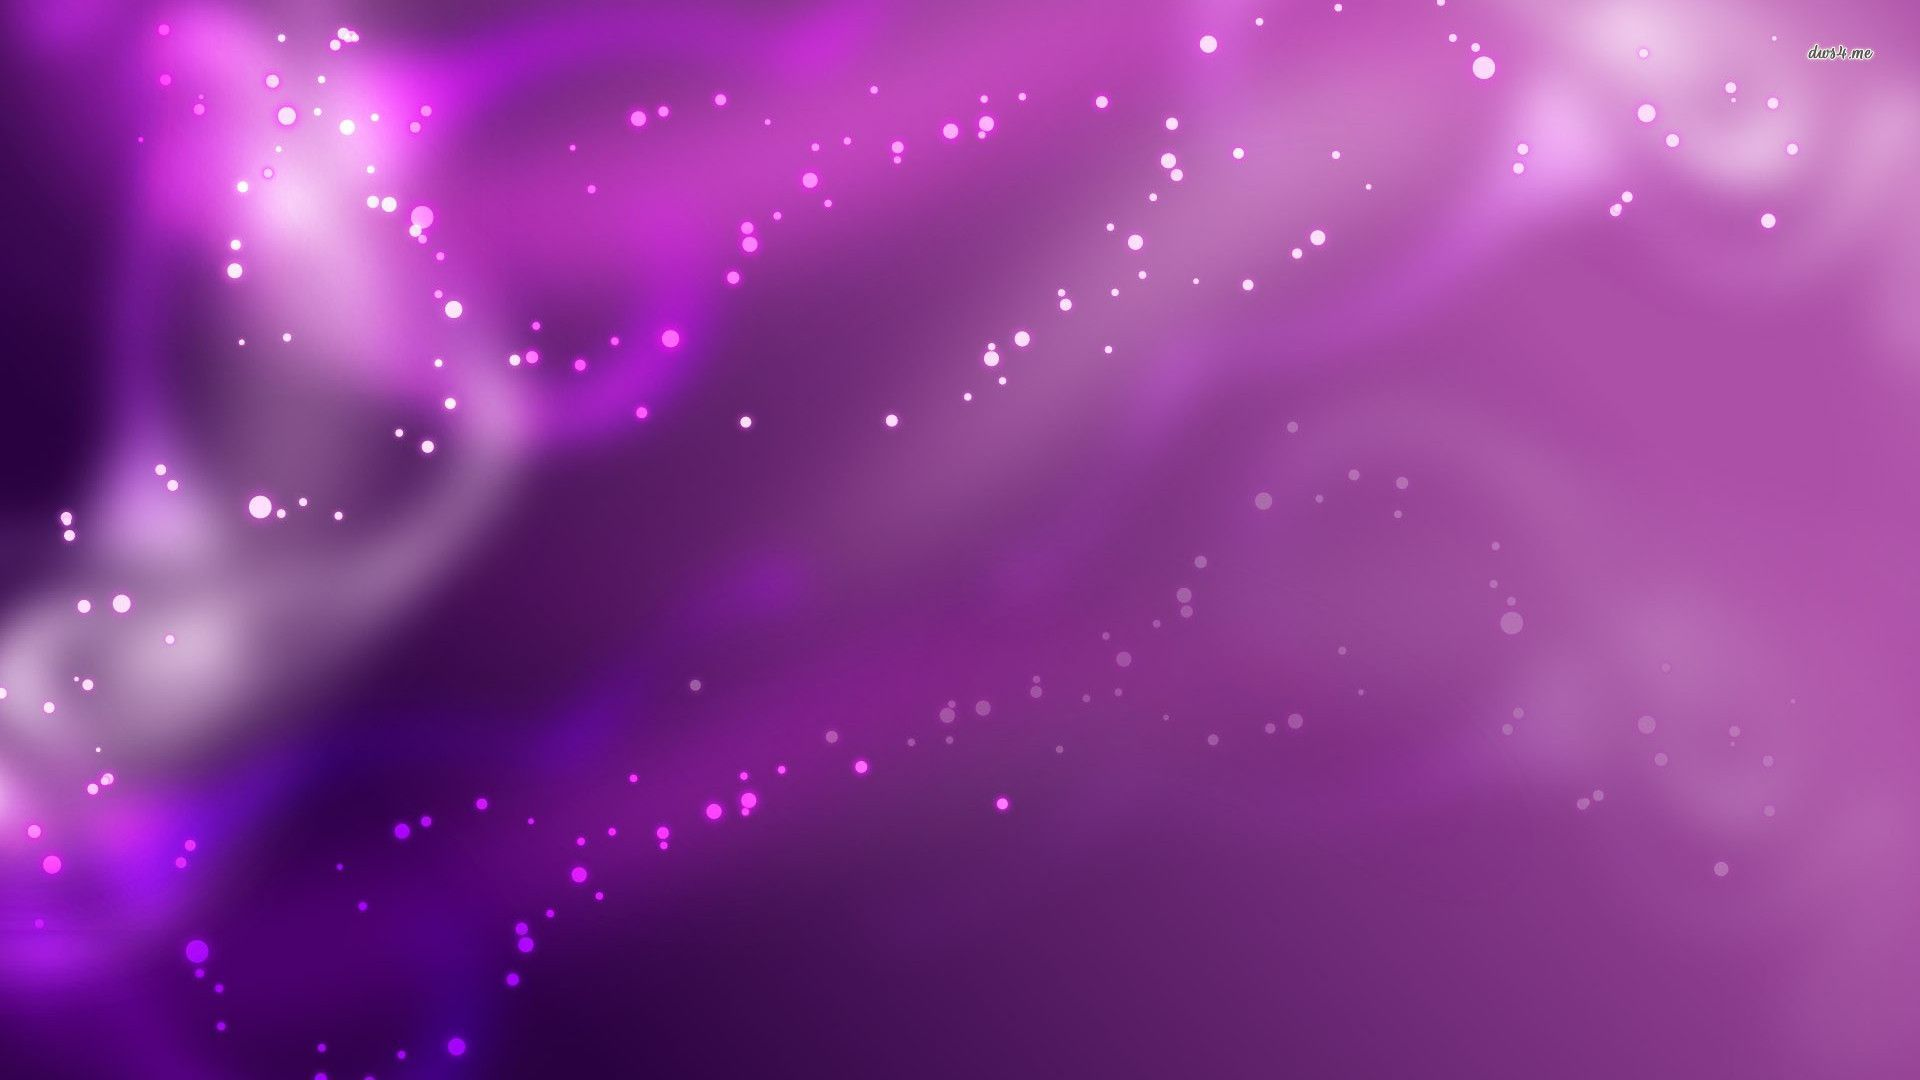 Purple And White Cool HD Wallpaper